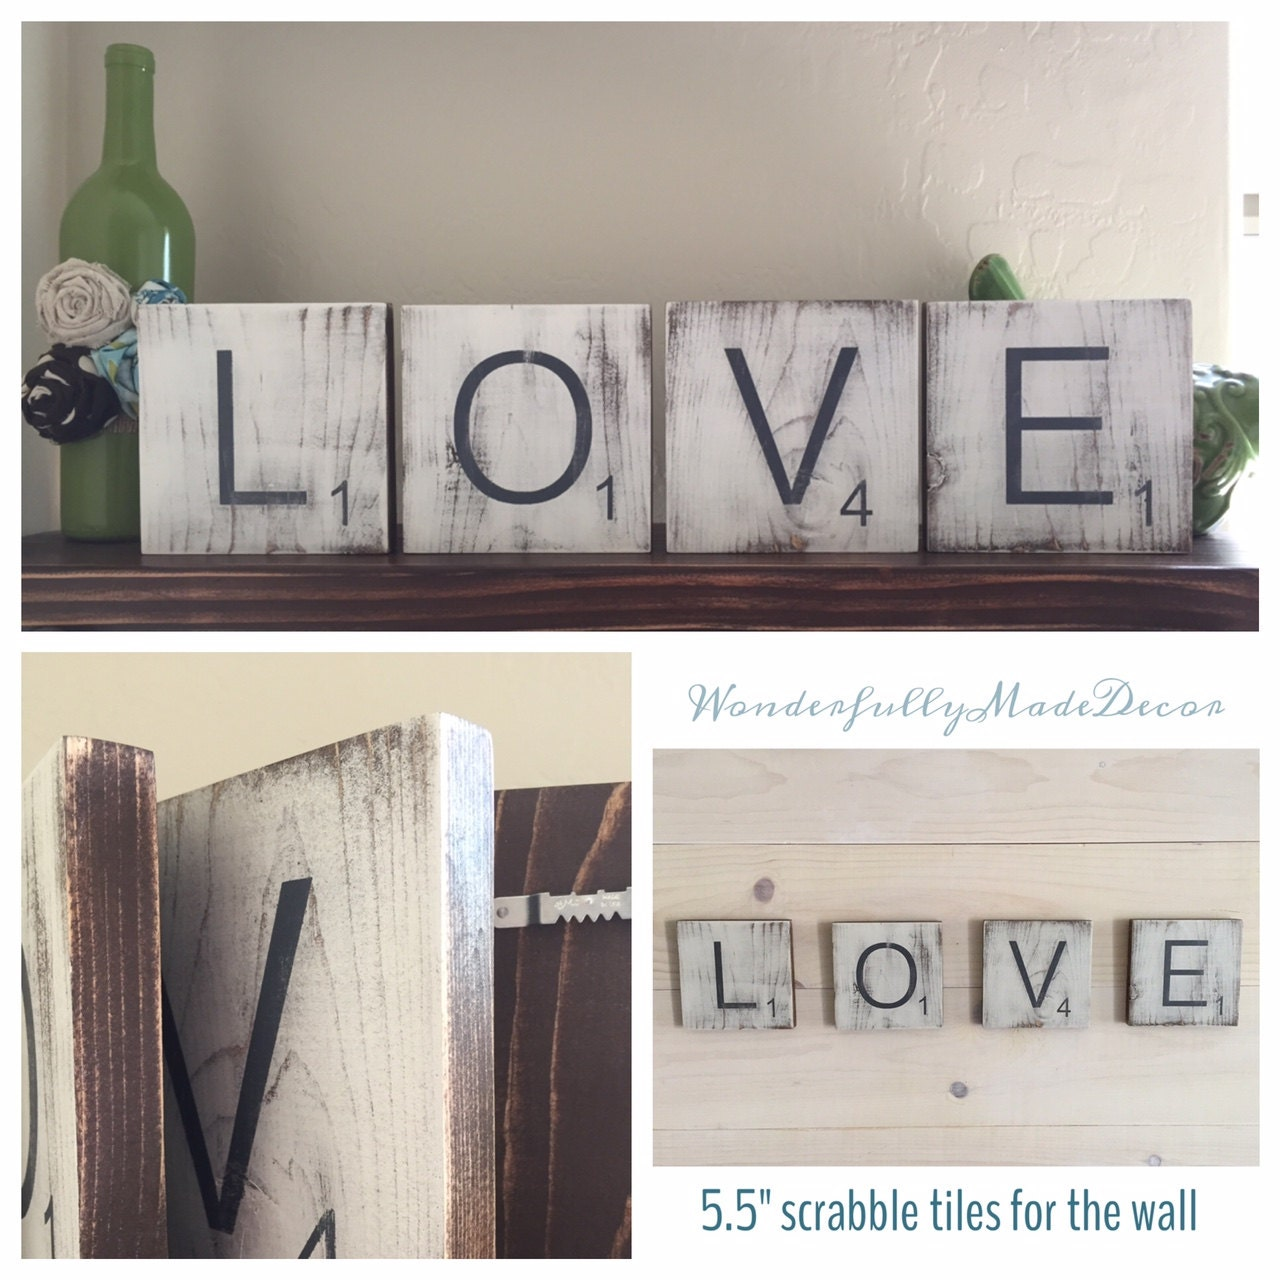 Large scrabble tiles for the wall home by wonderfullymadedecor - Wall decor tiles ...